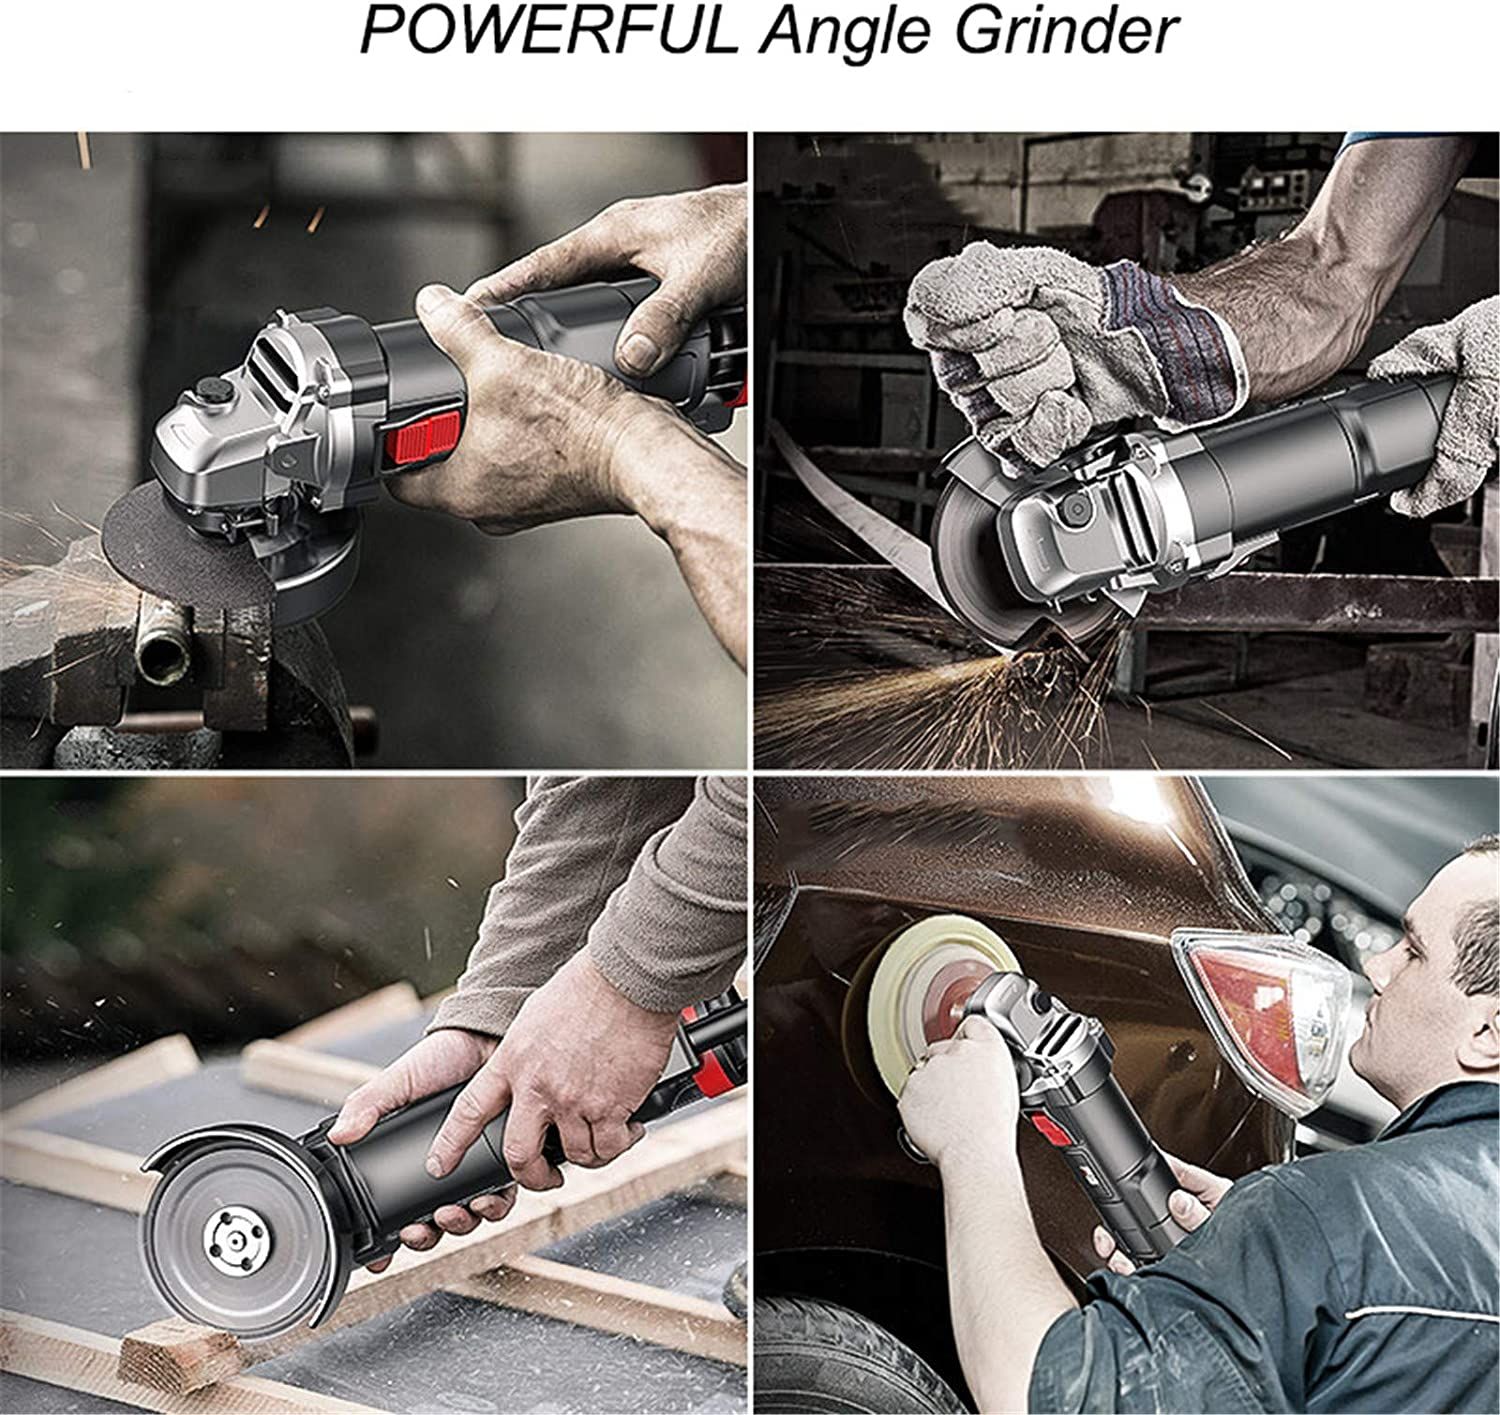 Side Handle 4-Inch Grinder Tool JFGUOYA Angle Grinder Cutting Includes 4Pcs Grinding Wheel and 10Pcs Cutting Wheel for Removing Paint /& Mortar Sanding Grinding